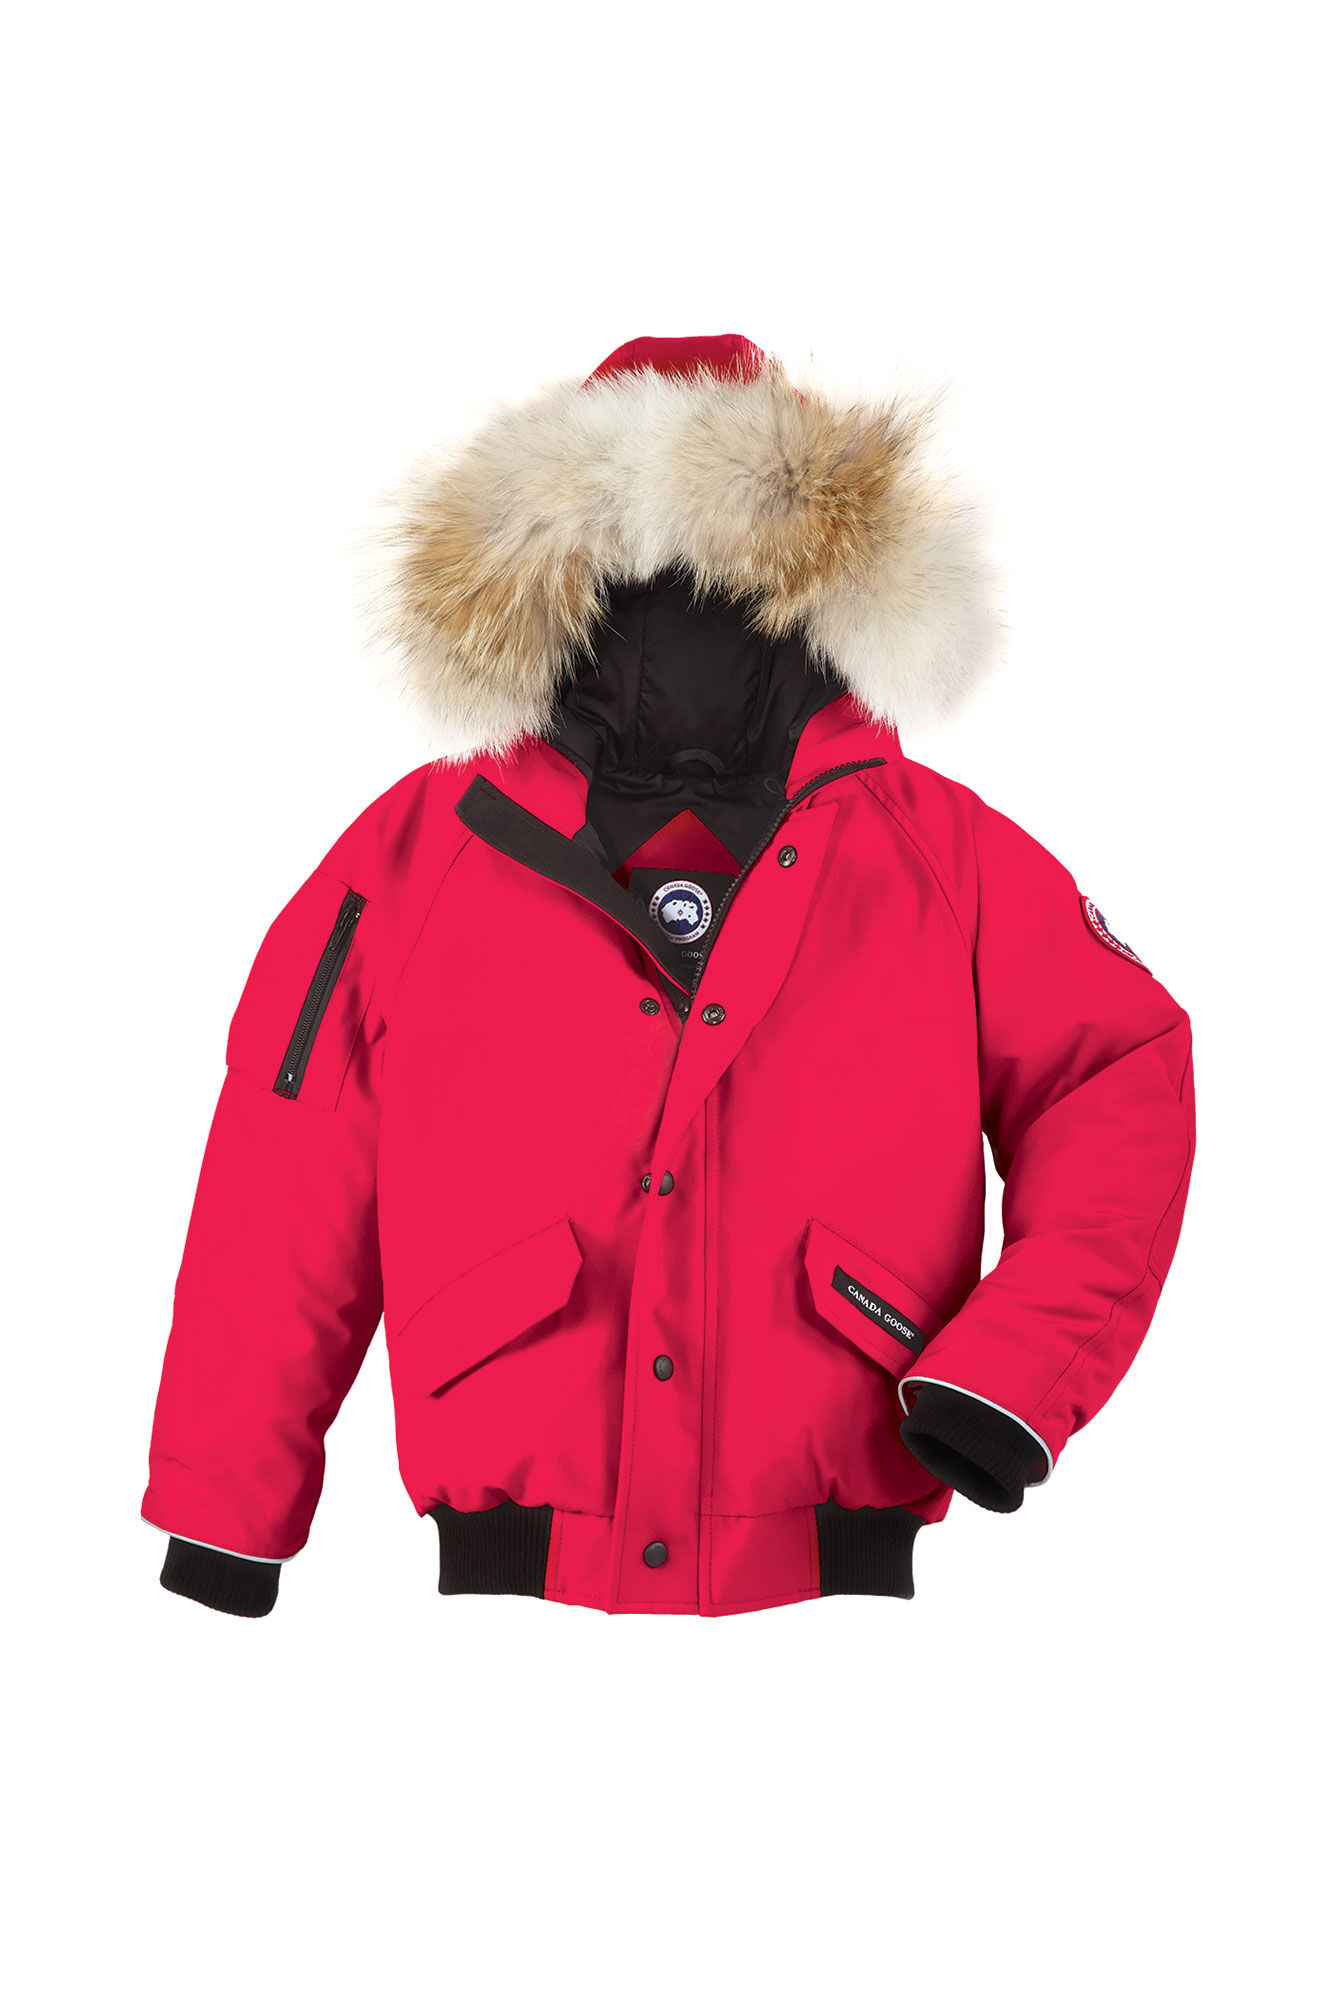 Canada Goose chateau parka replica cheap - Rundle Bomber | Canada Goose?